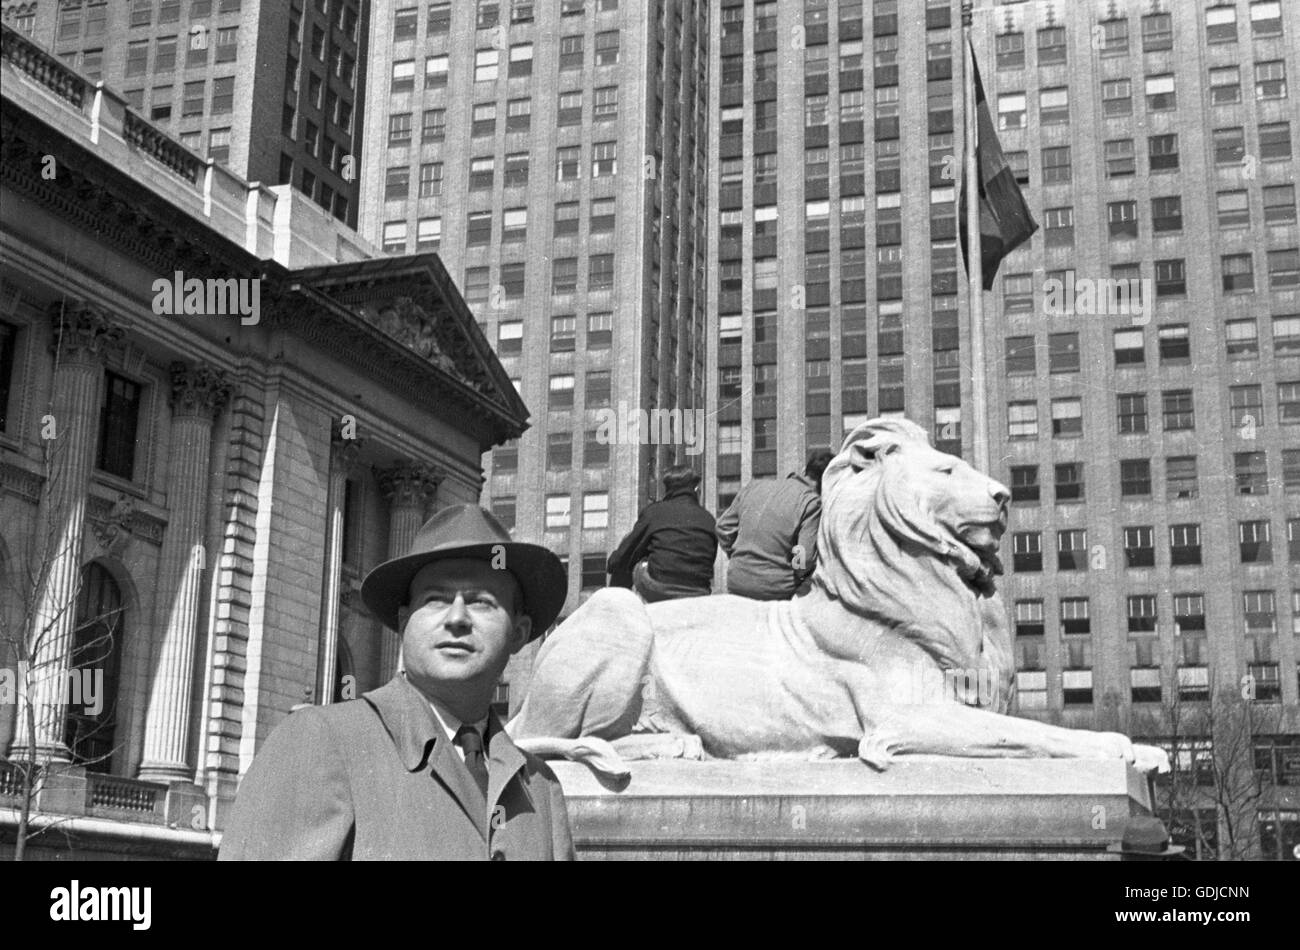 Photographer Arthur Rothstein in front of the New York Public Library on 5th Avenue. The date is unknown, but it - Stock Image